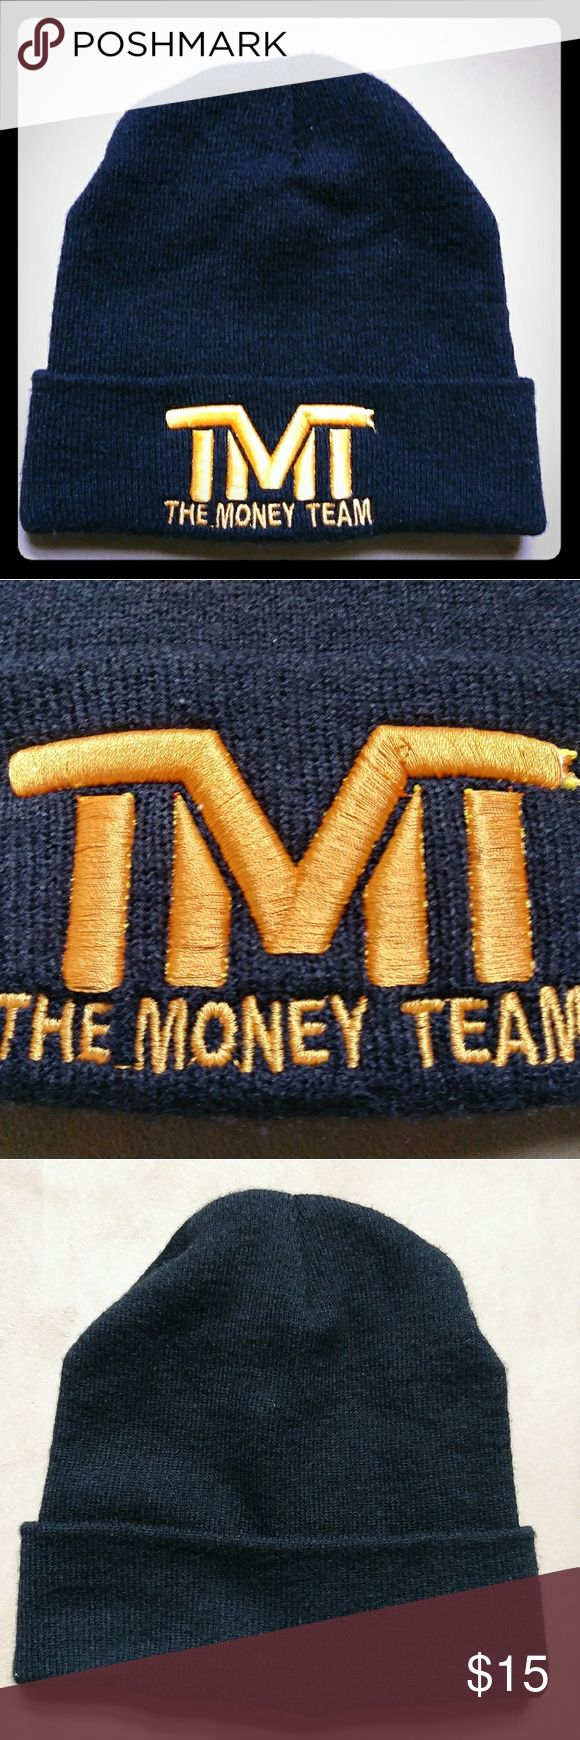 The Money Team Beanie Pre-owned Floyd Mayweather TMT beanie in great condition. No holes or snags. Comfortable, warm, and stylish. TMT Accessories Hats